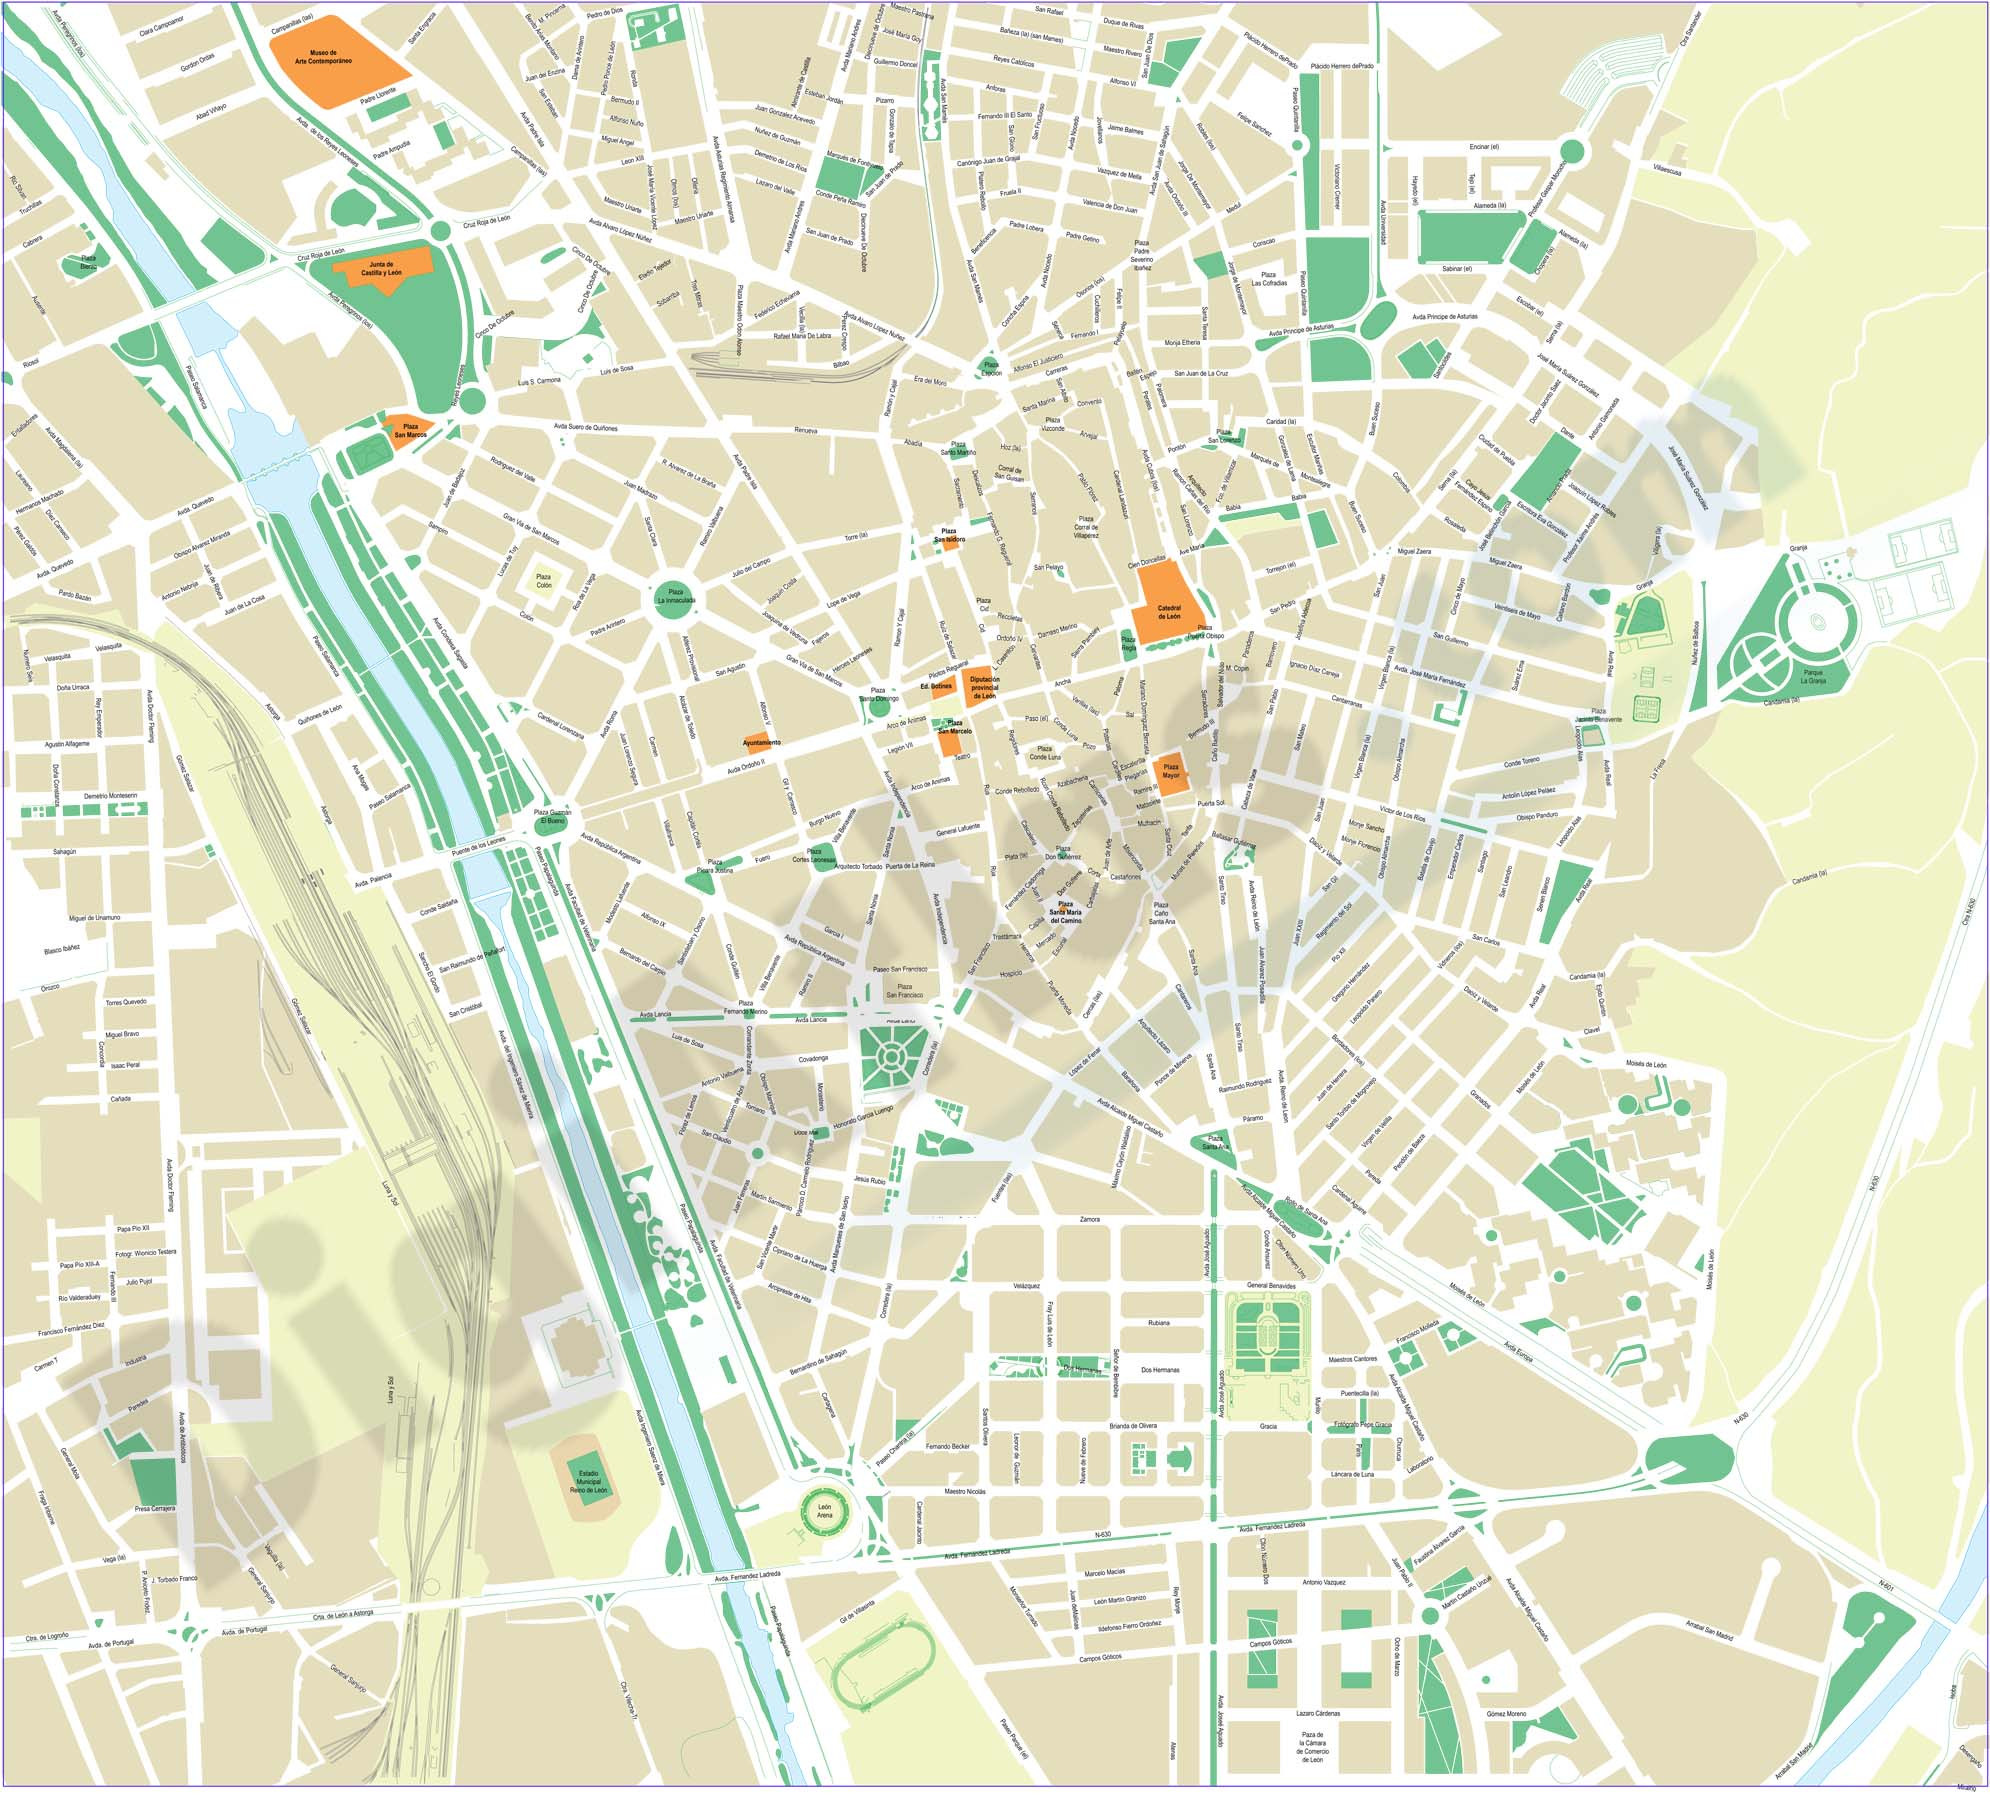 León (Spain) - center of city map